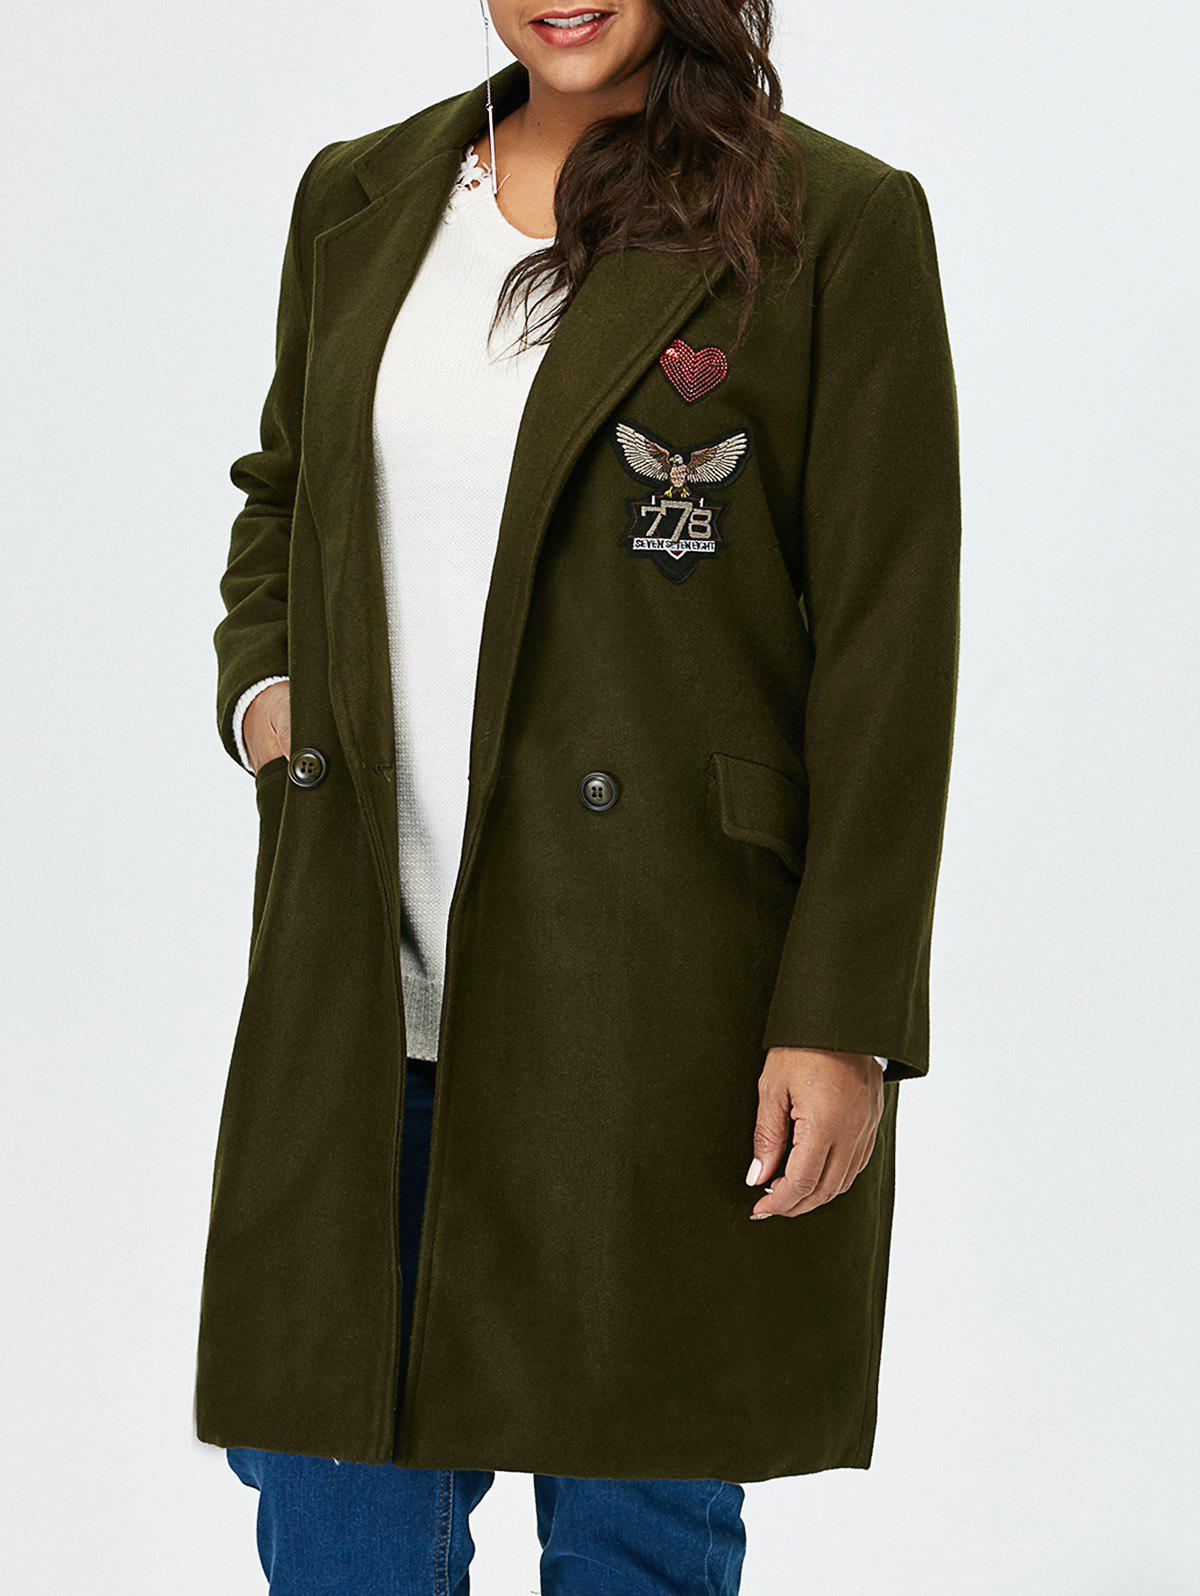 Plus-size manteau long à palangre d'autocollants - RAL Olive Jaune 3XL